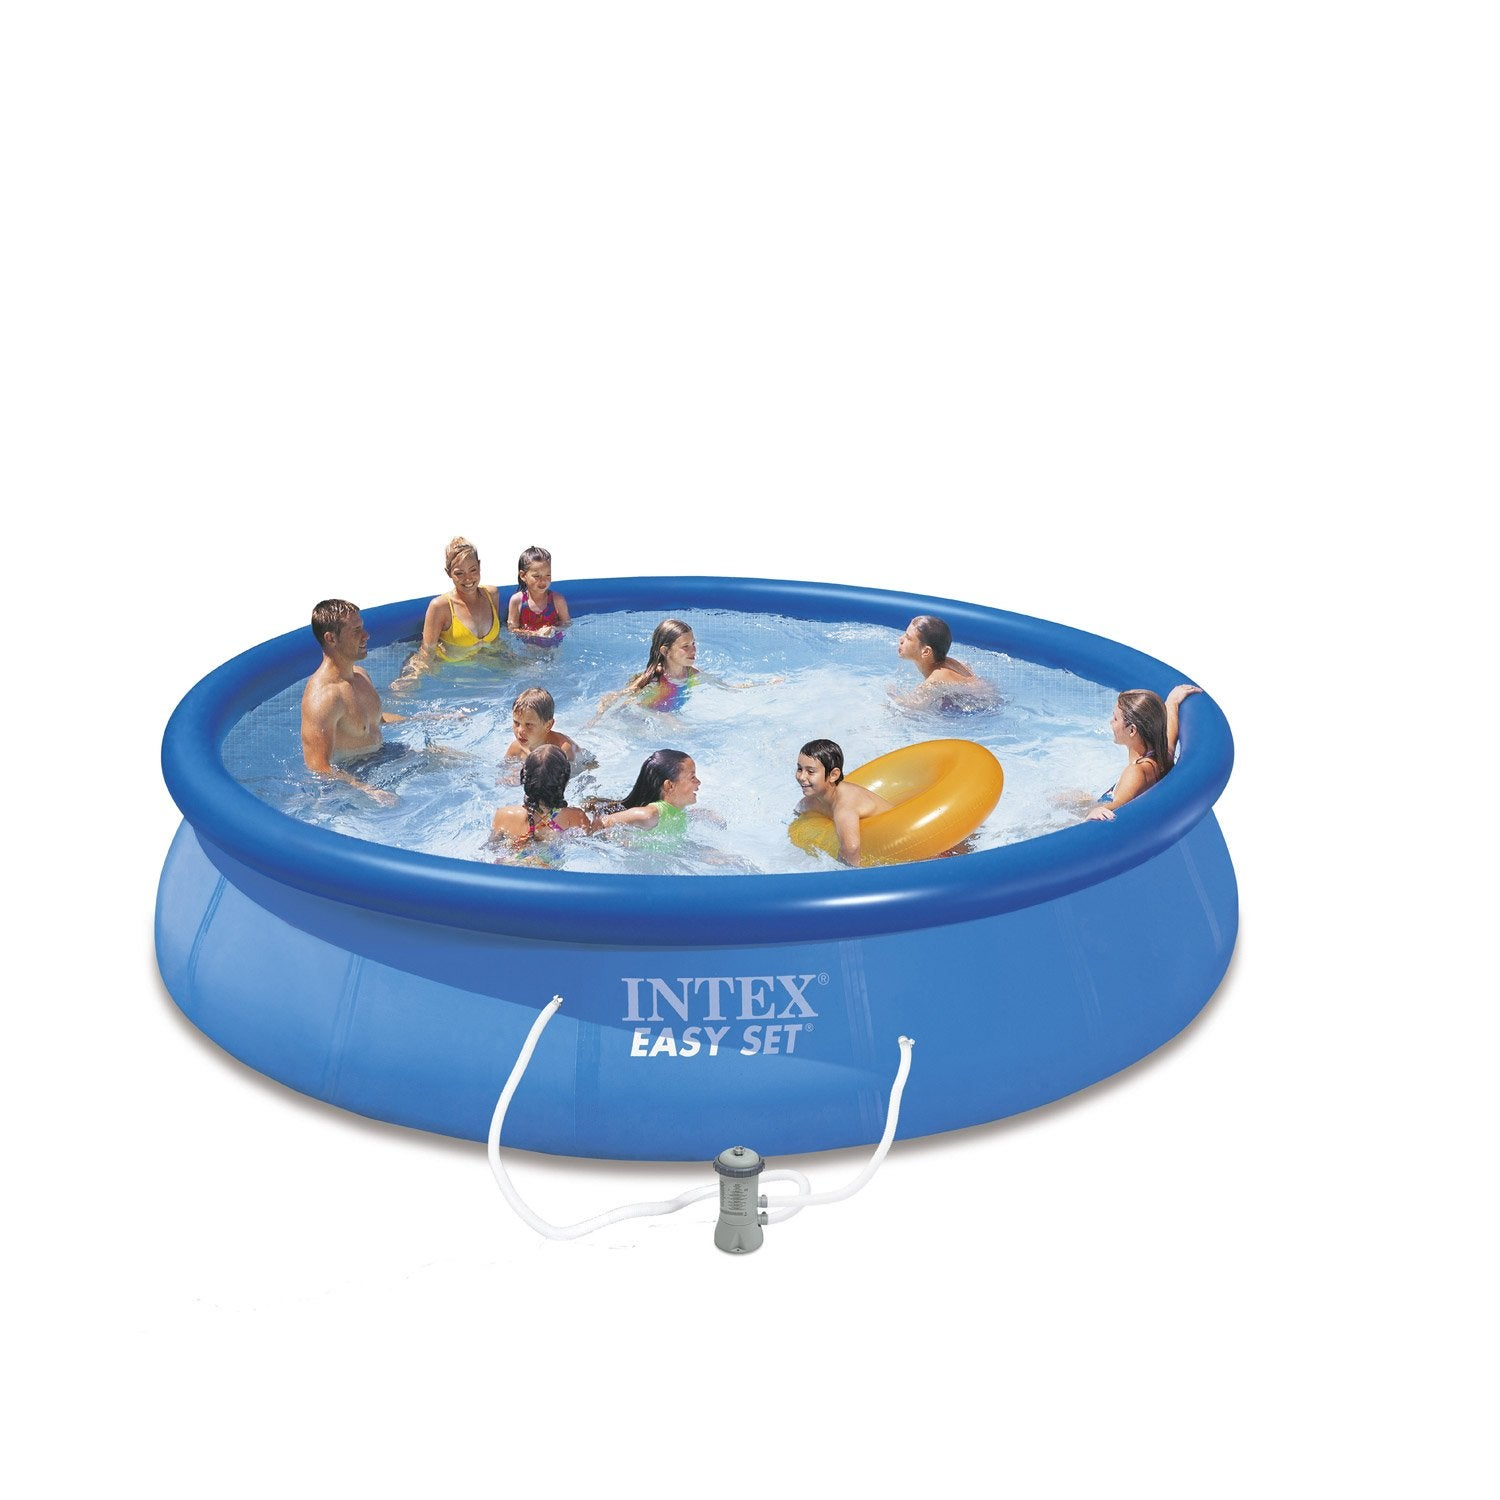 Piscine hors sol autoportante gonflable easy set intex for Pompe piscine hors sol carrefour